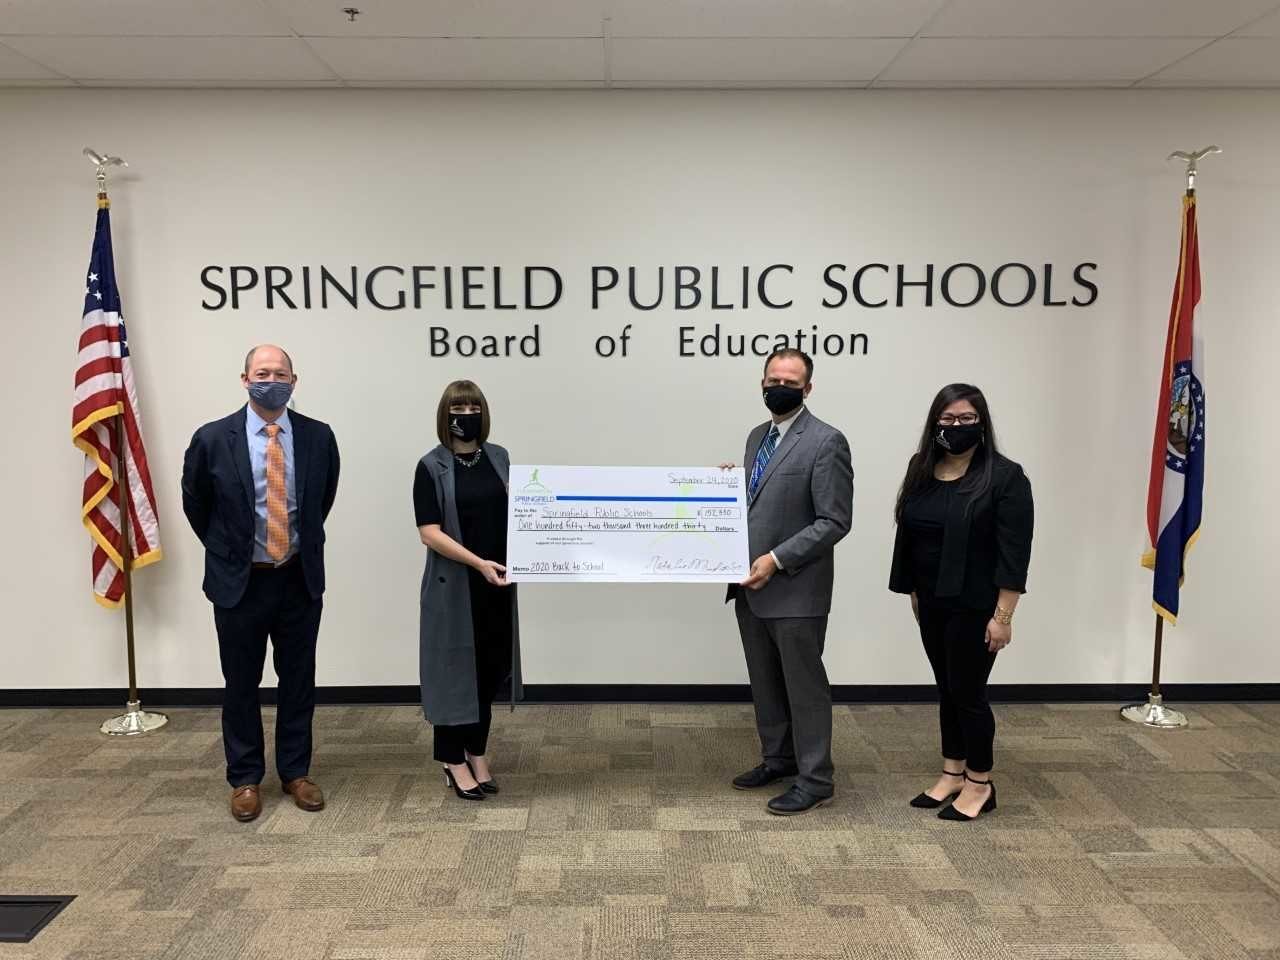 SPS Superintendent John Jungmann, second from right, accepts a ceremonial check from foundation officials, from left, Stephen Gintz, Natalie Murdock and Tina Pham.